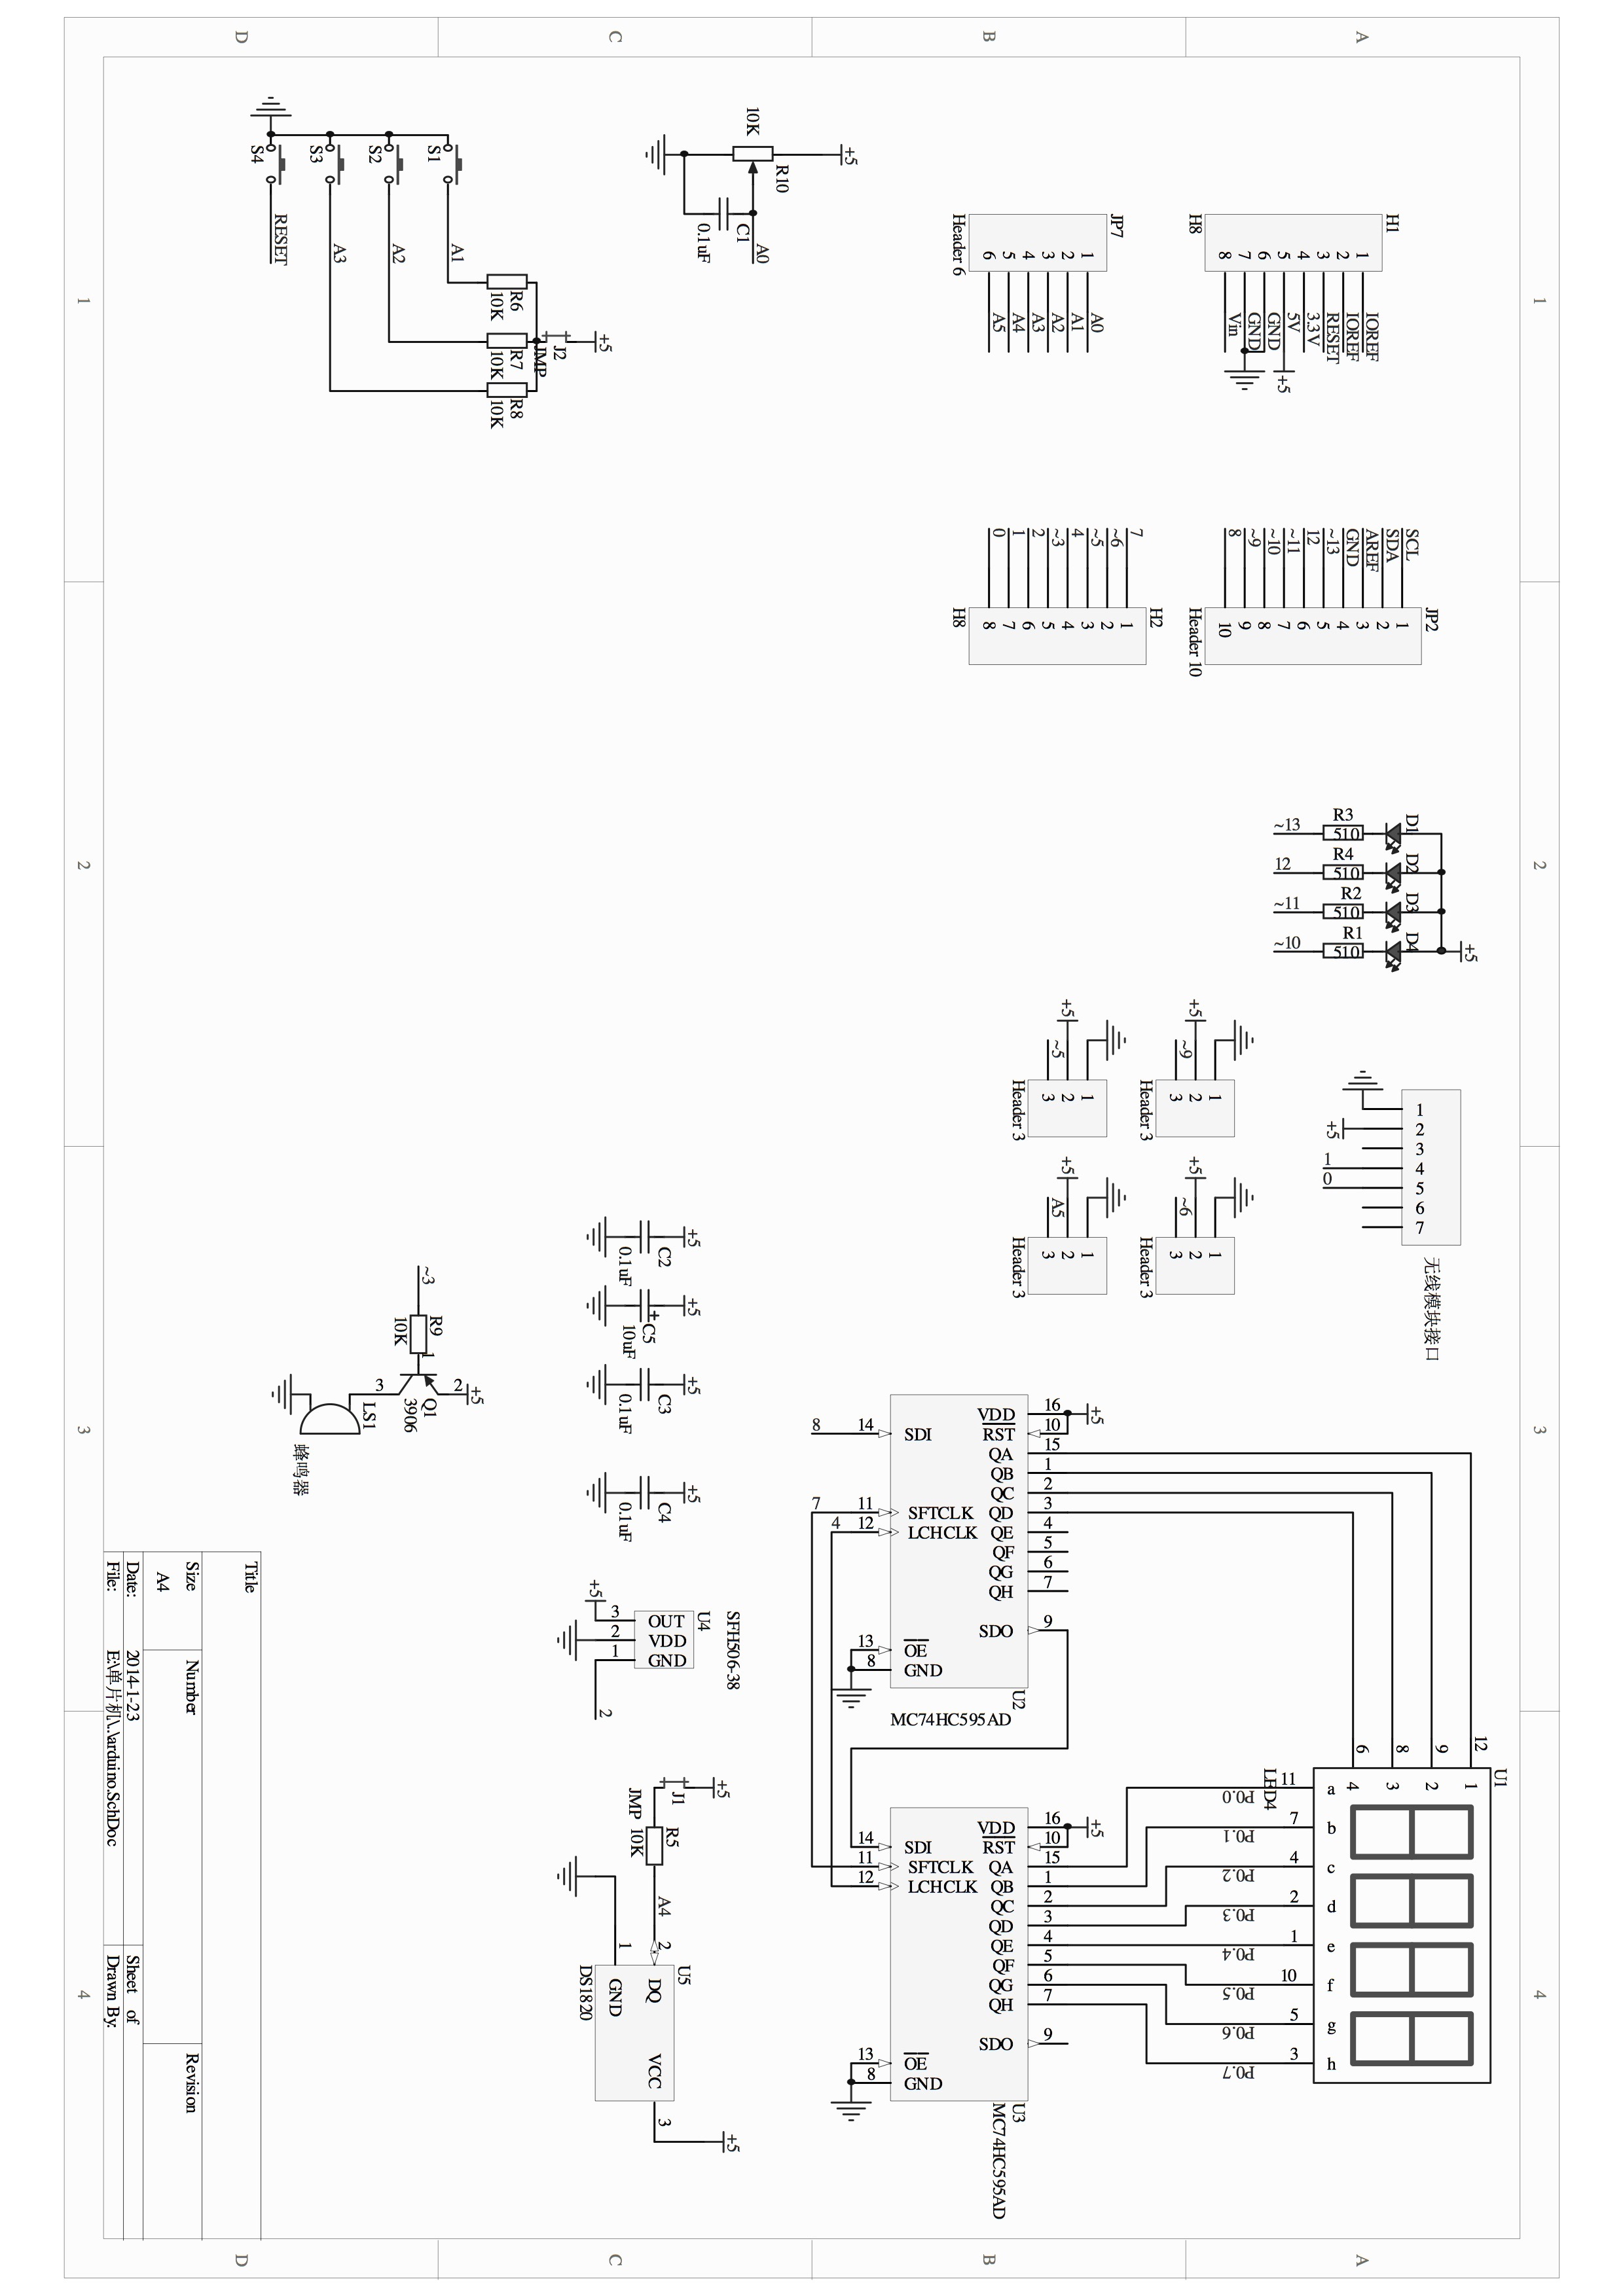 Circuit diagram for the Multi-function shield II board (  1 page PDF, 24KB  )